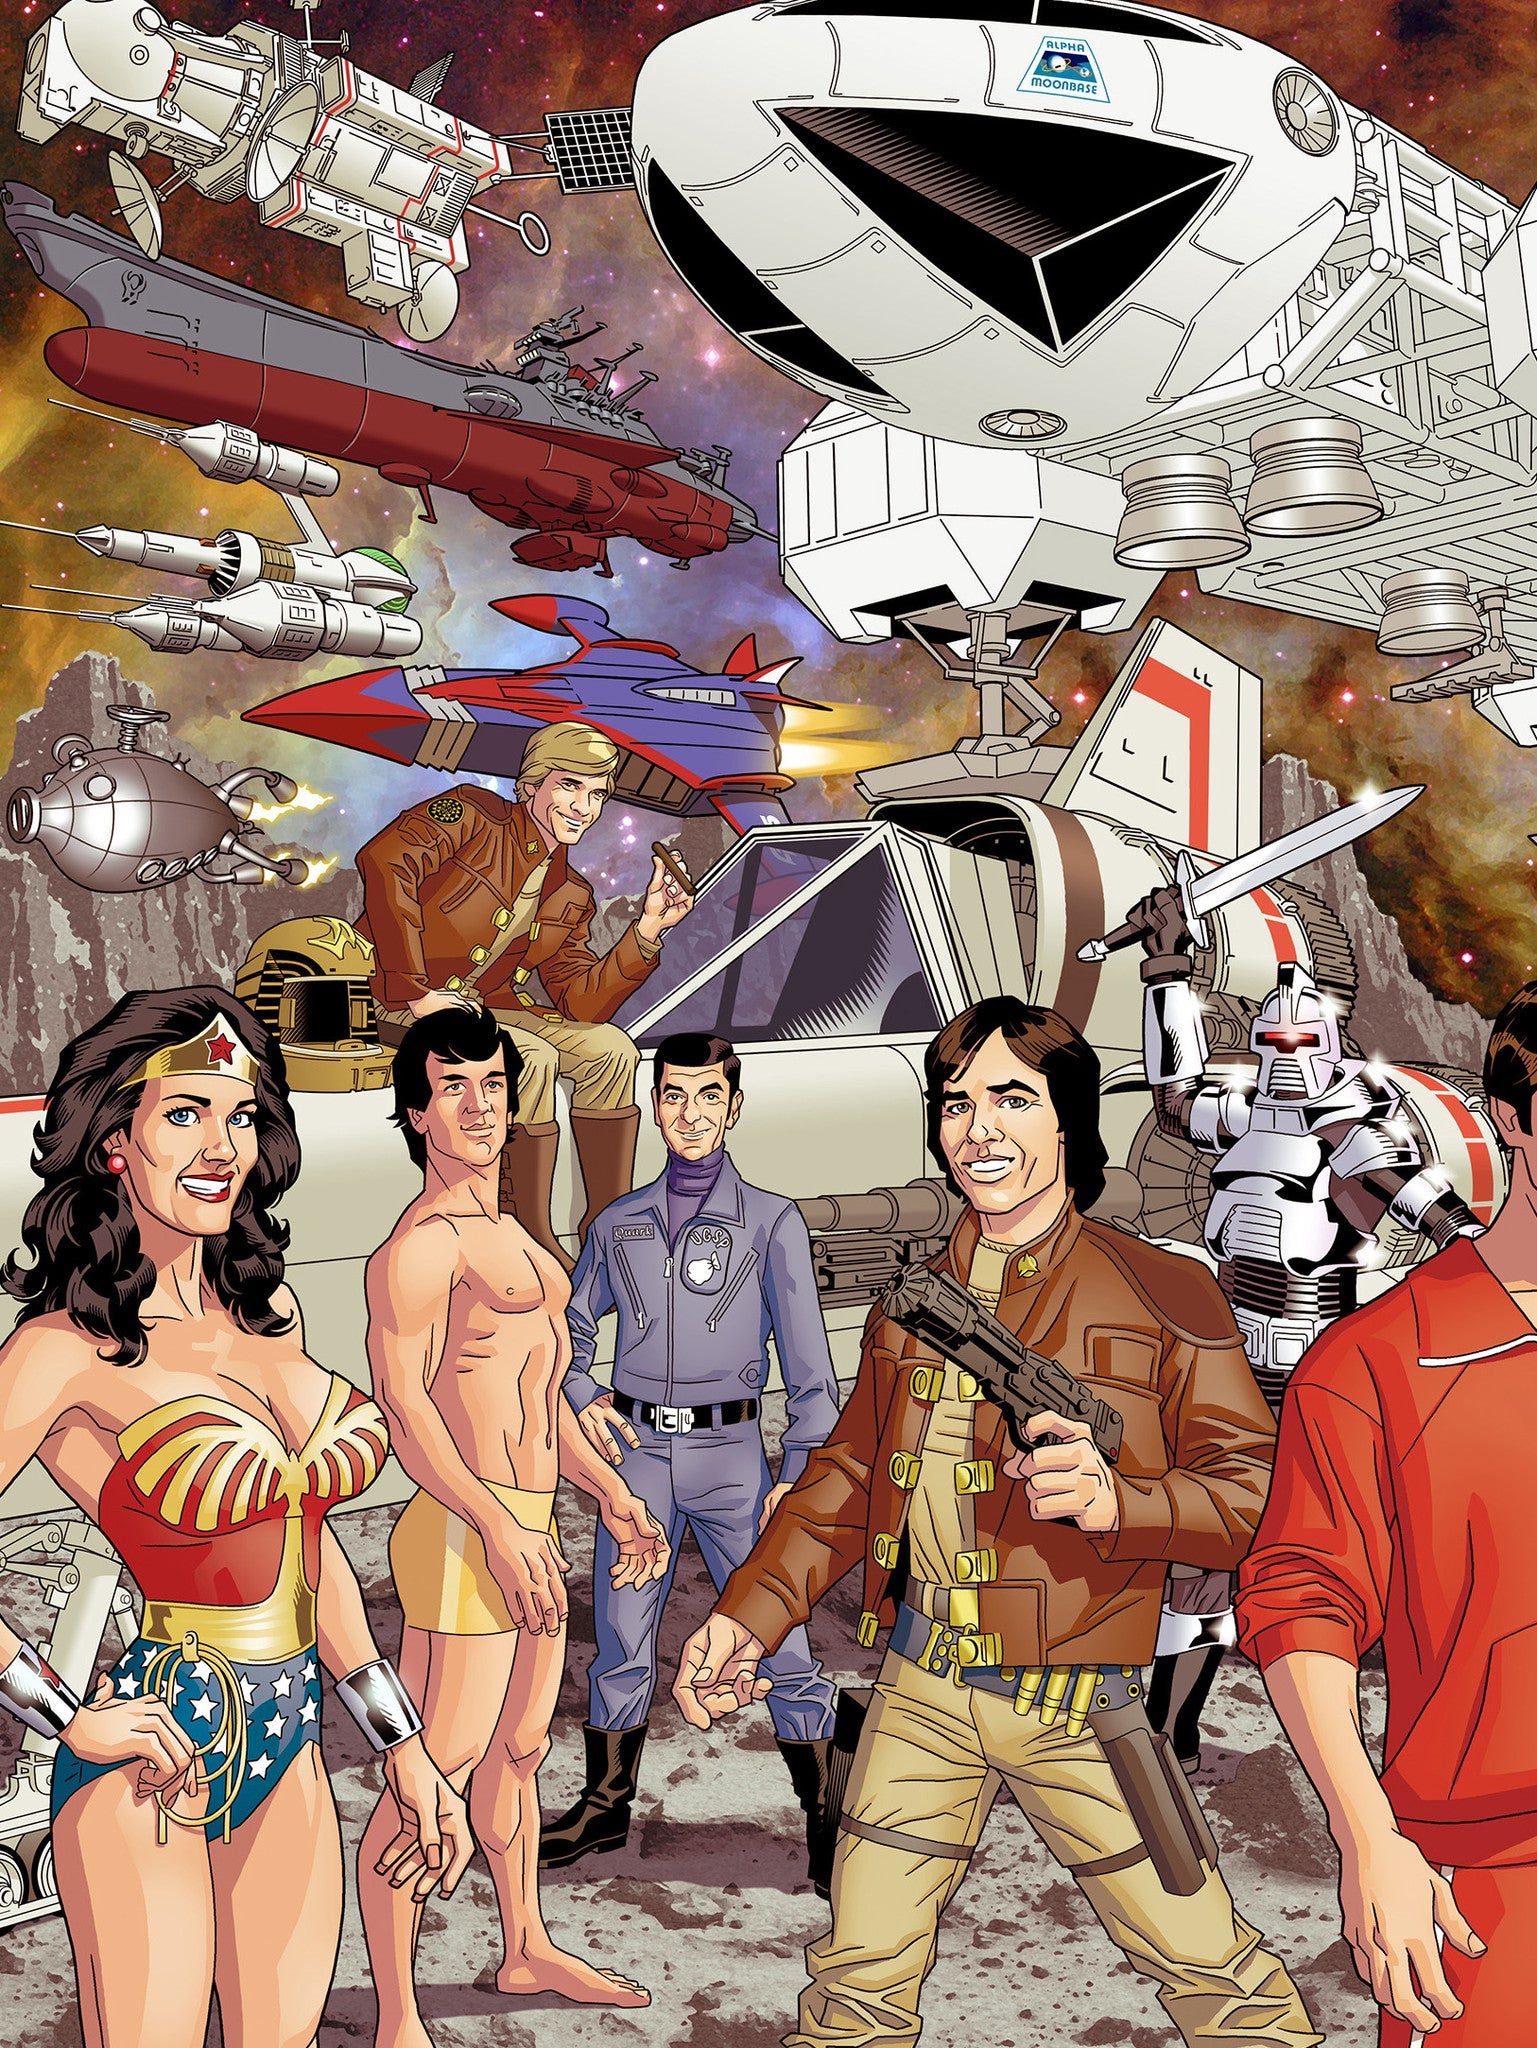 Televisions Sci Fi Superheroes Of The 70s Dustyabell